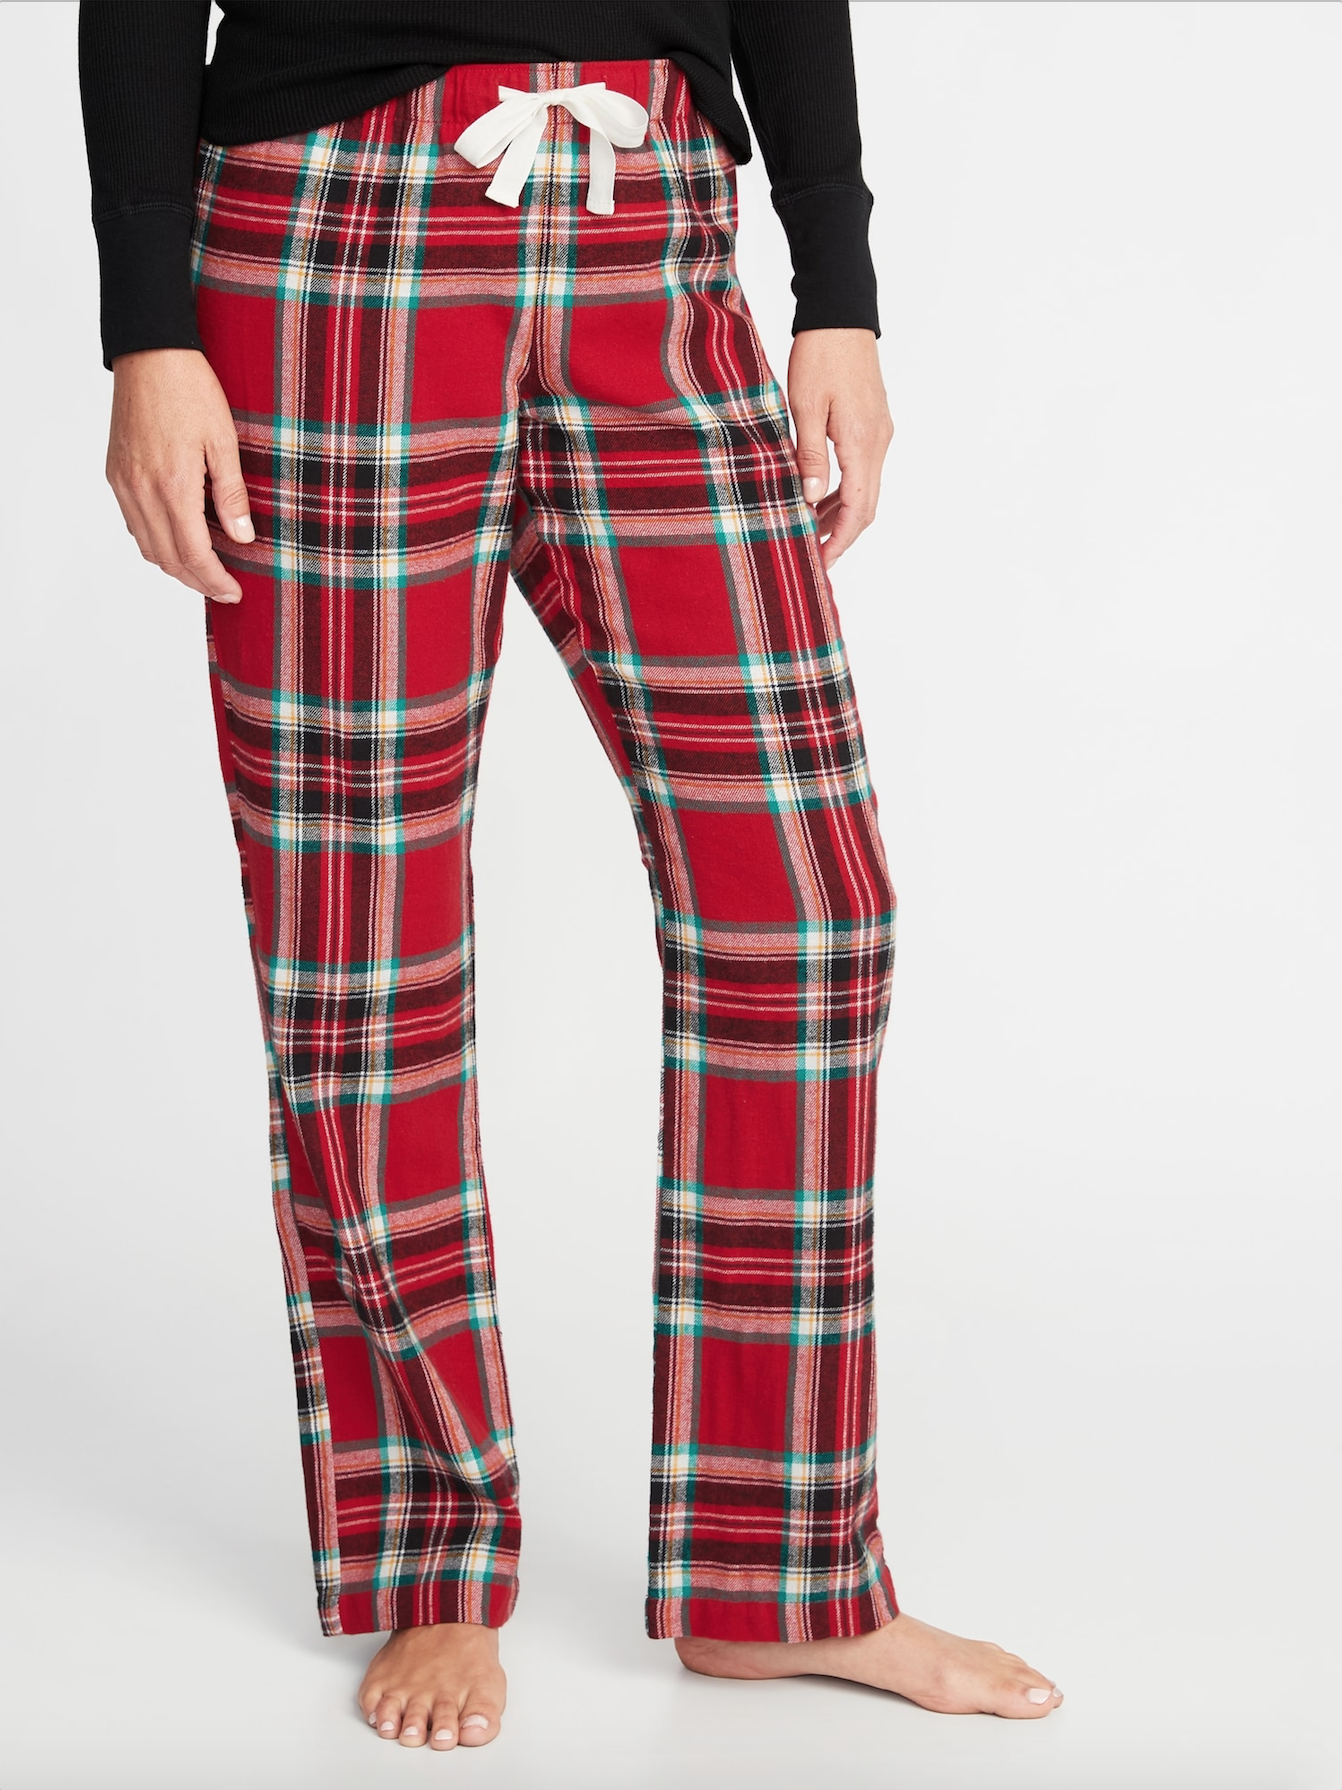 patterned-flannel-sleep-pants-striaght-let-old-navy-tie-at-waist-red ...